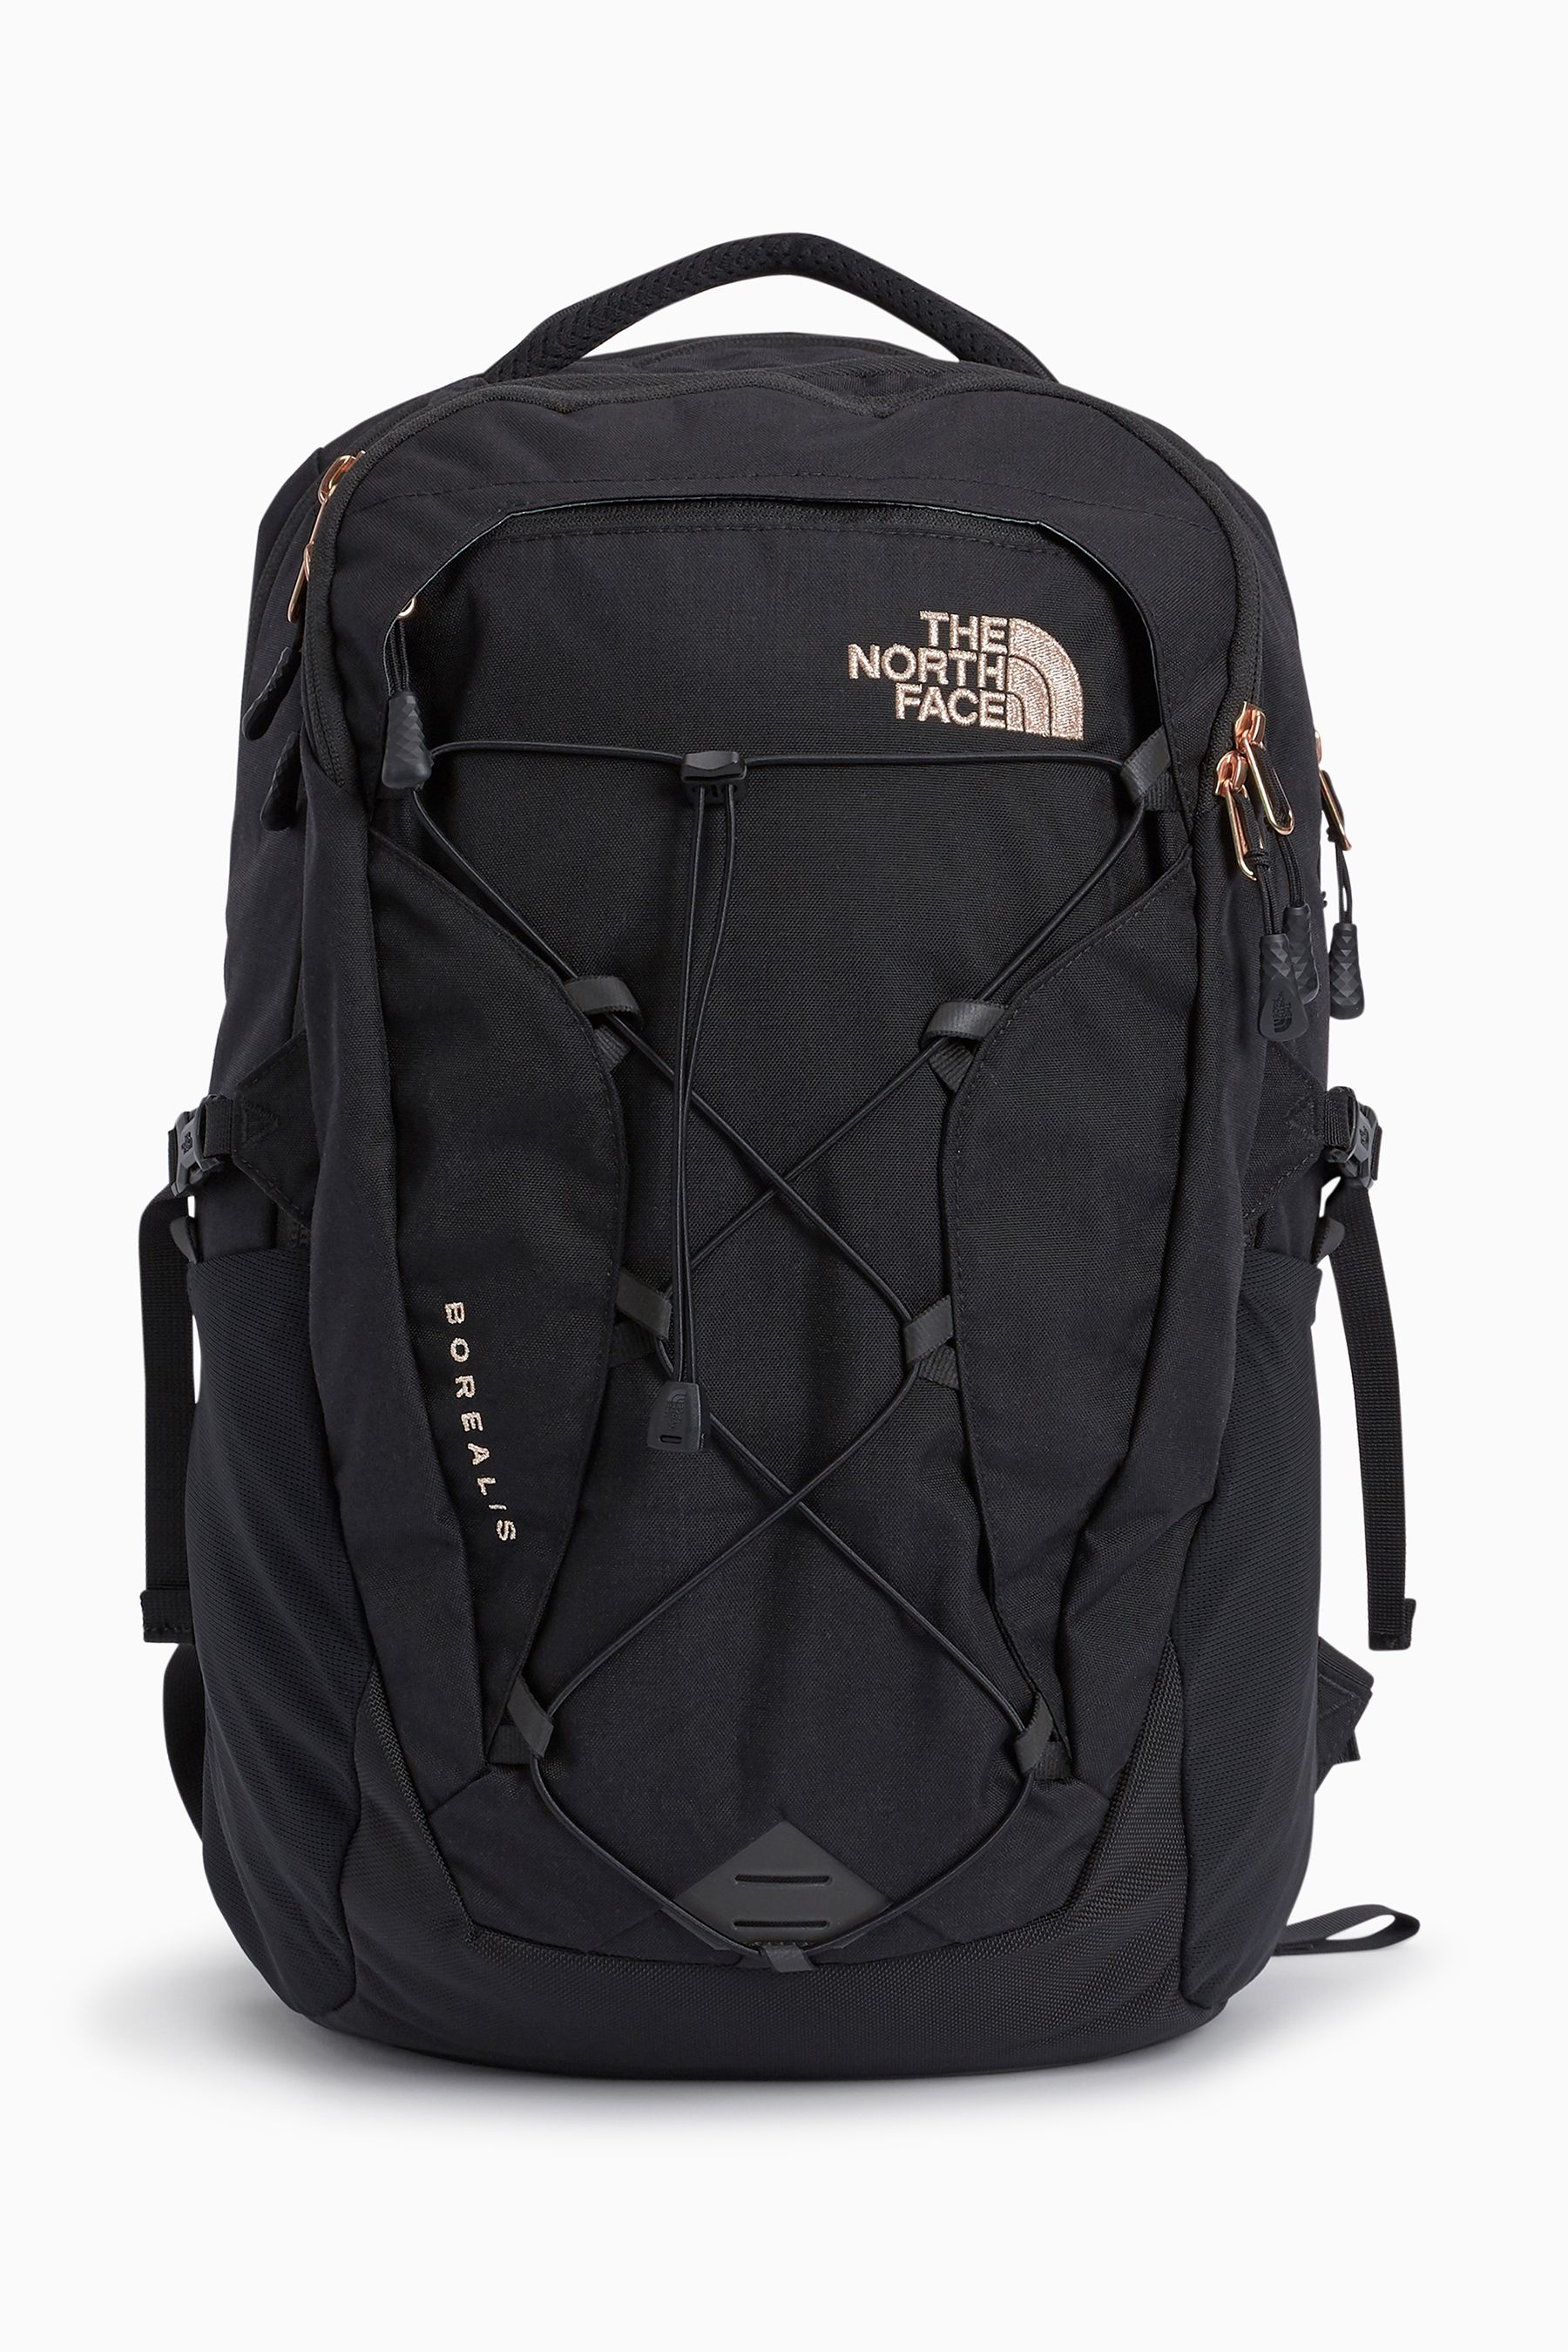 9dc1180c47 Mens The North Face Black Heather Gold Borealis Backpack - Black ...